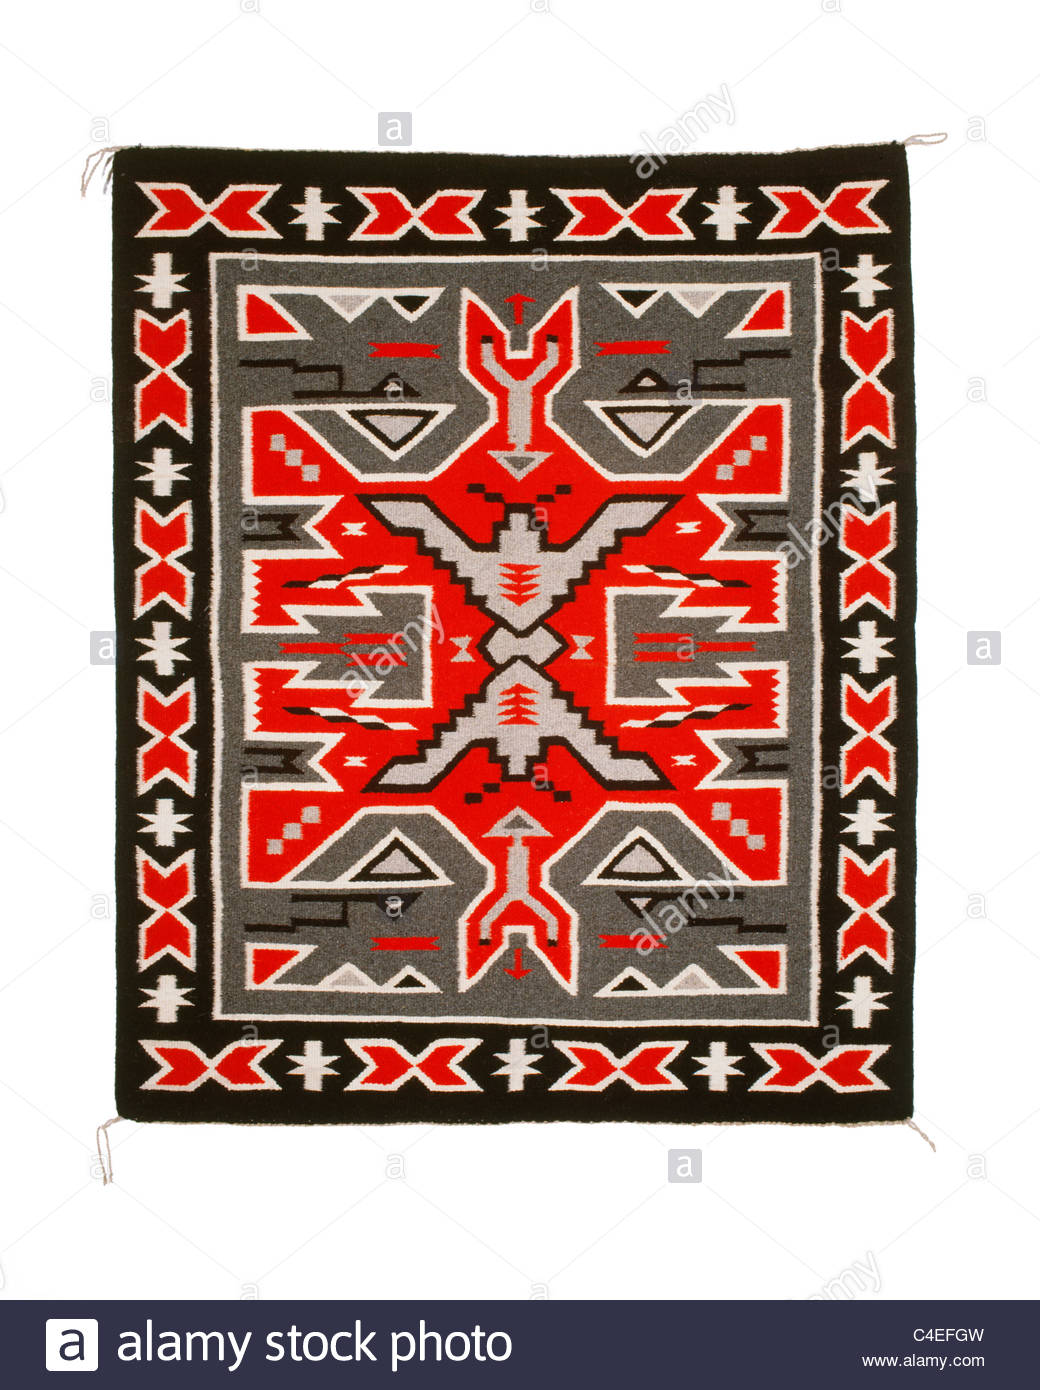 "teec nos pos hindu singles Woven either as singles (typically 2'8"" x 3' square) or doubles (up to 3' x 5', used   single saddle blanket, teec nos pos area ca1930–40."